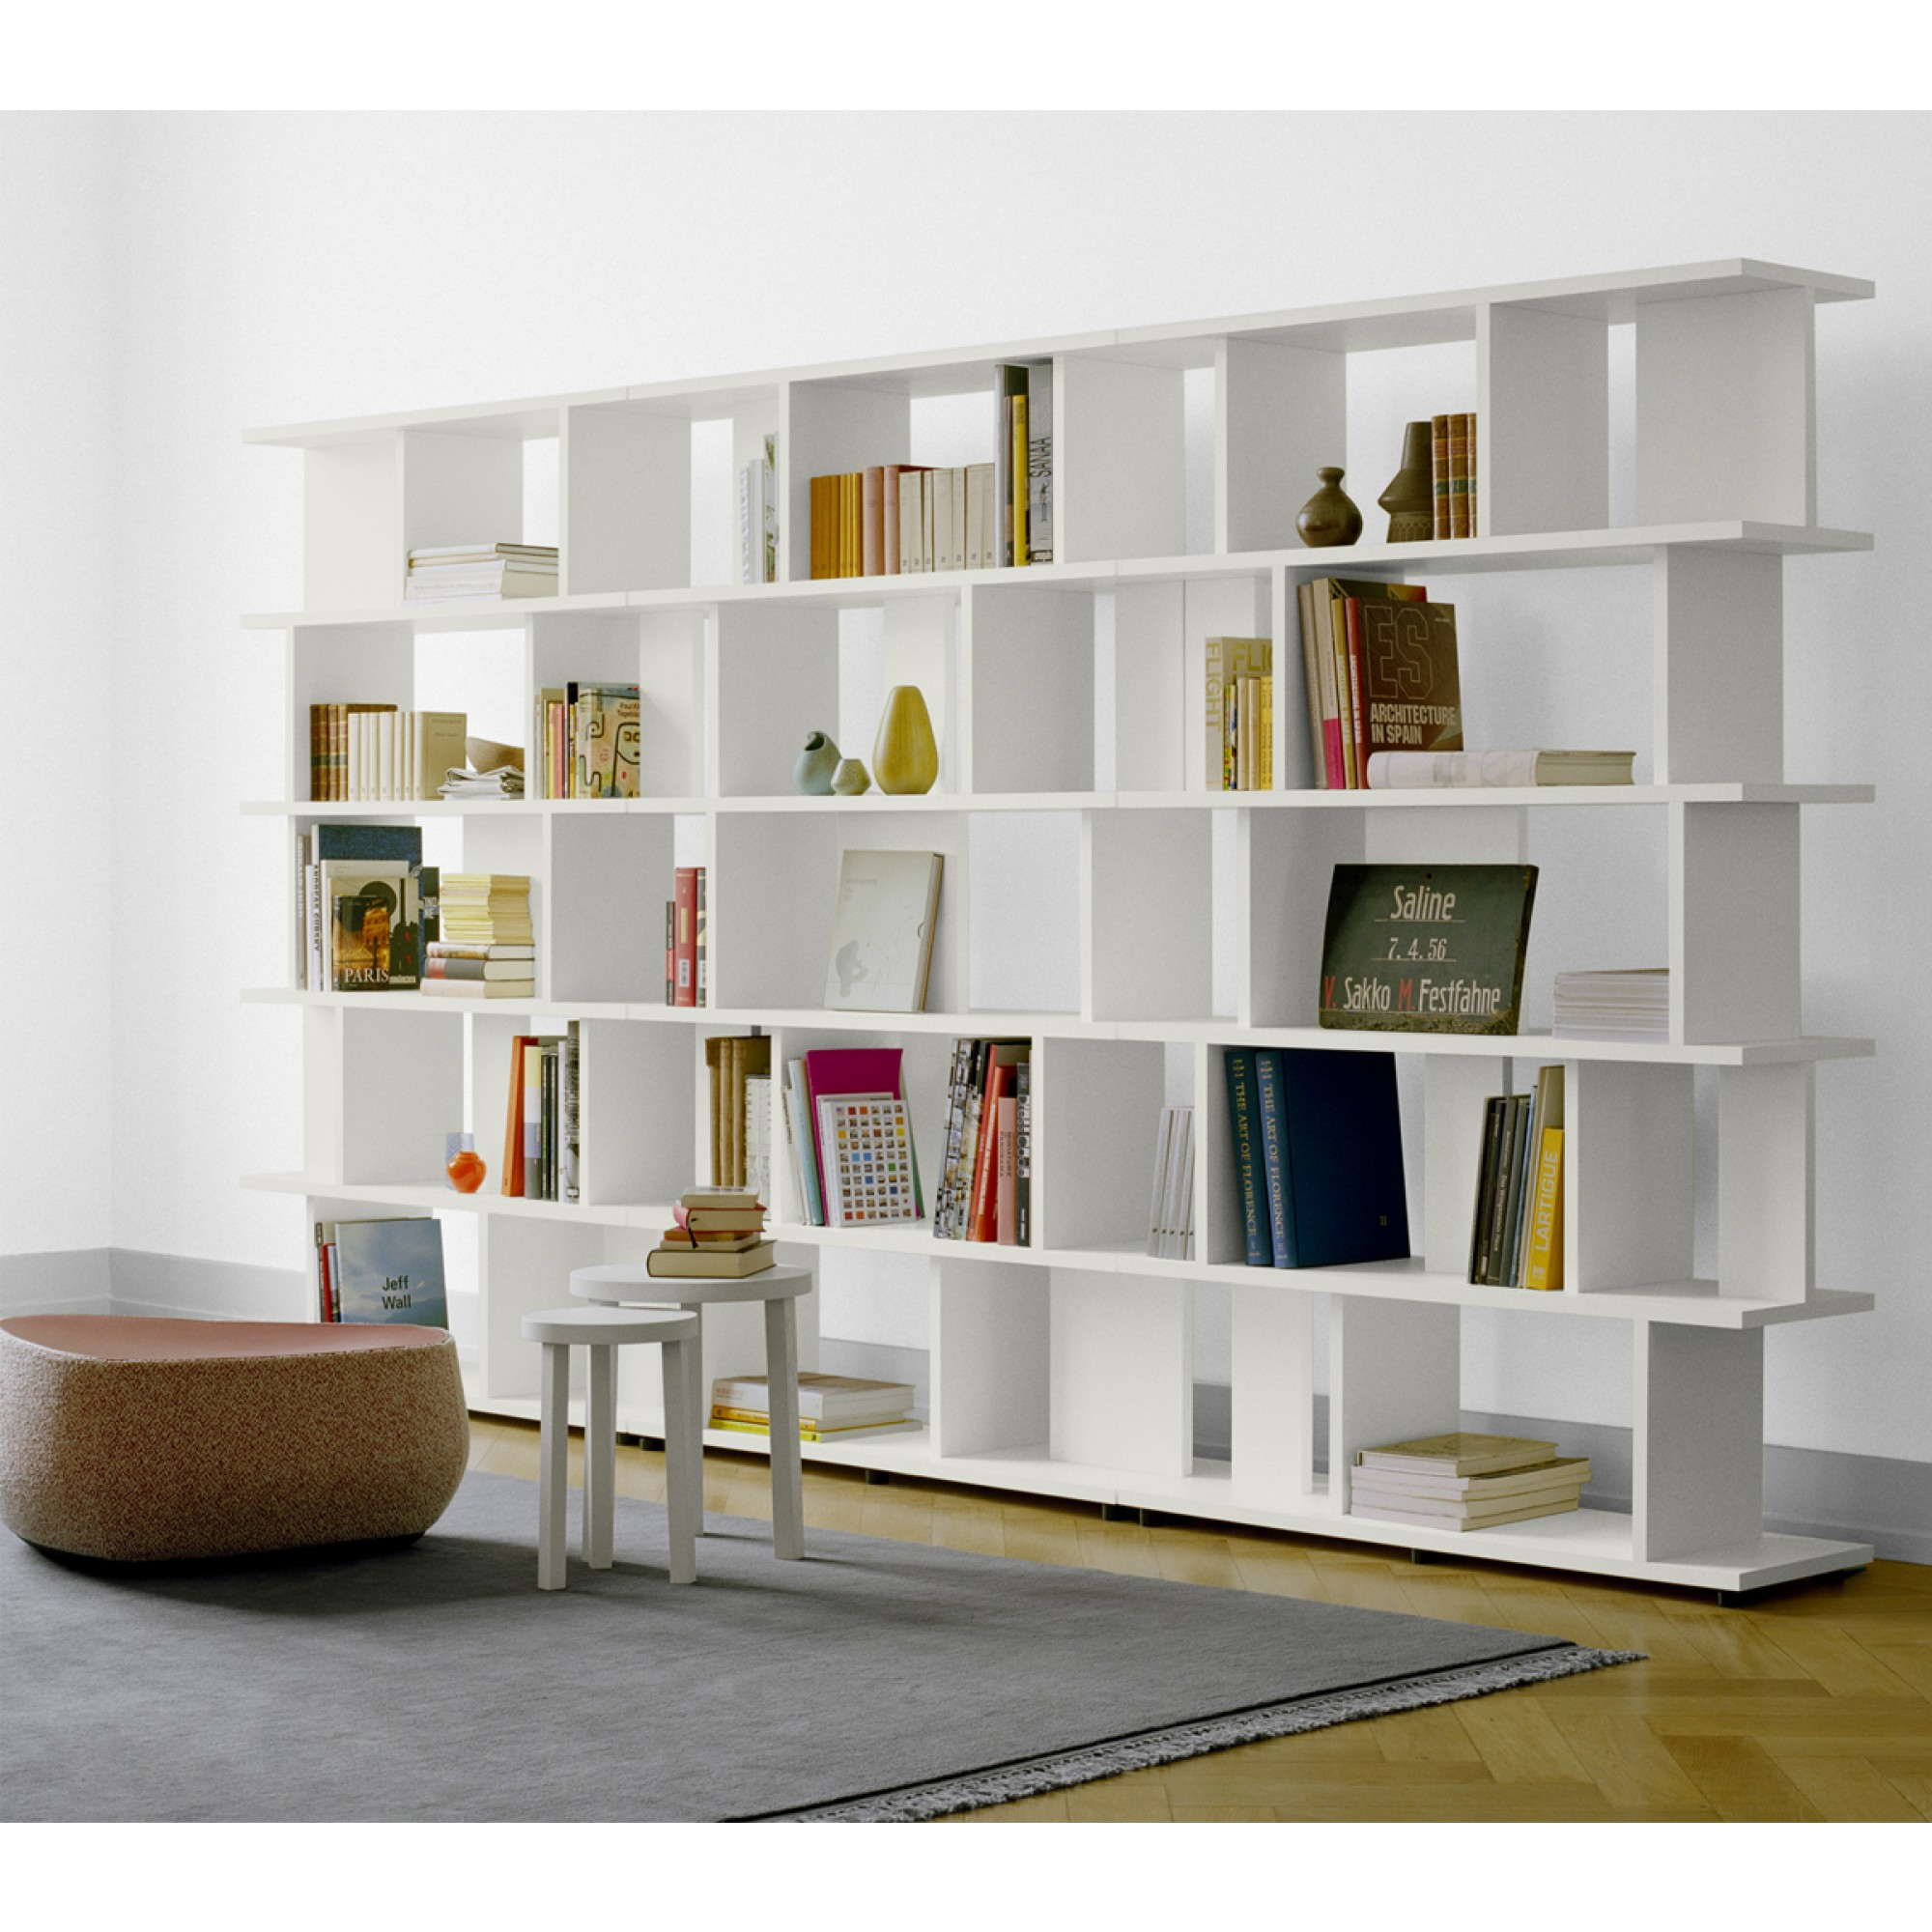 Room Divider Kast Kast Twee Shelf By E15 Luxury Interior Design Online Shop